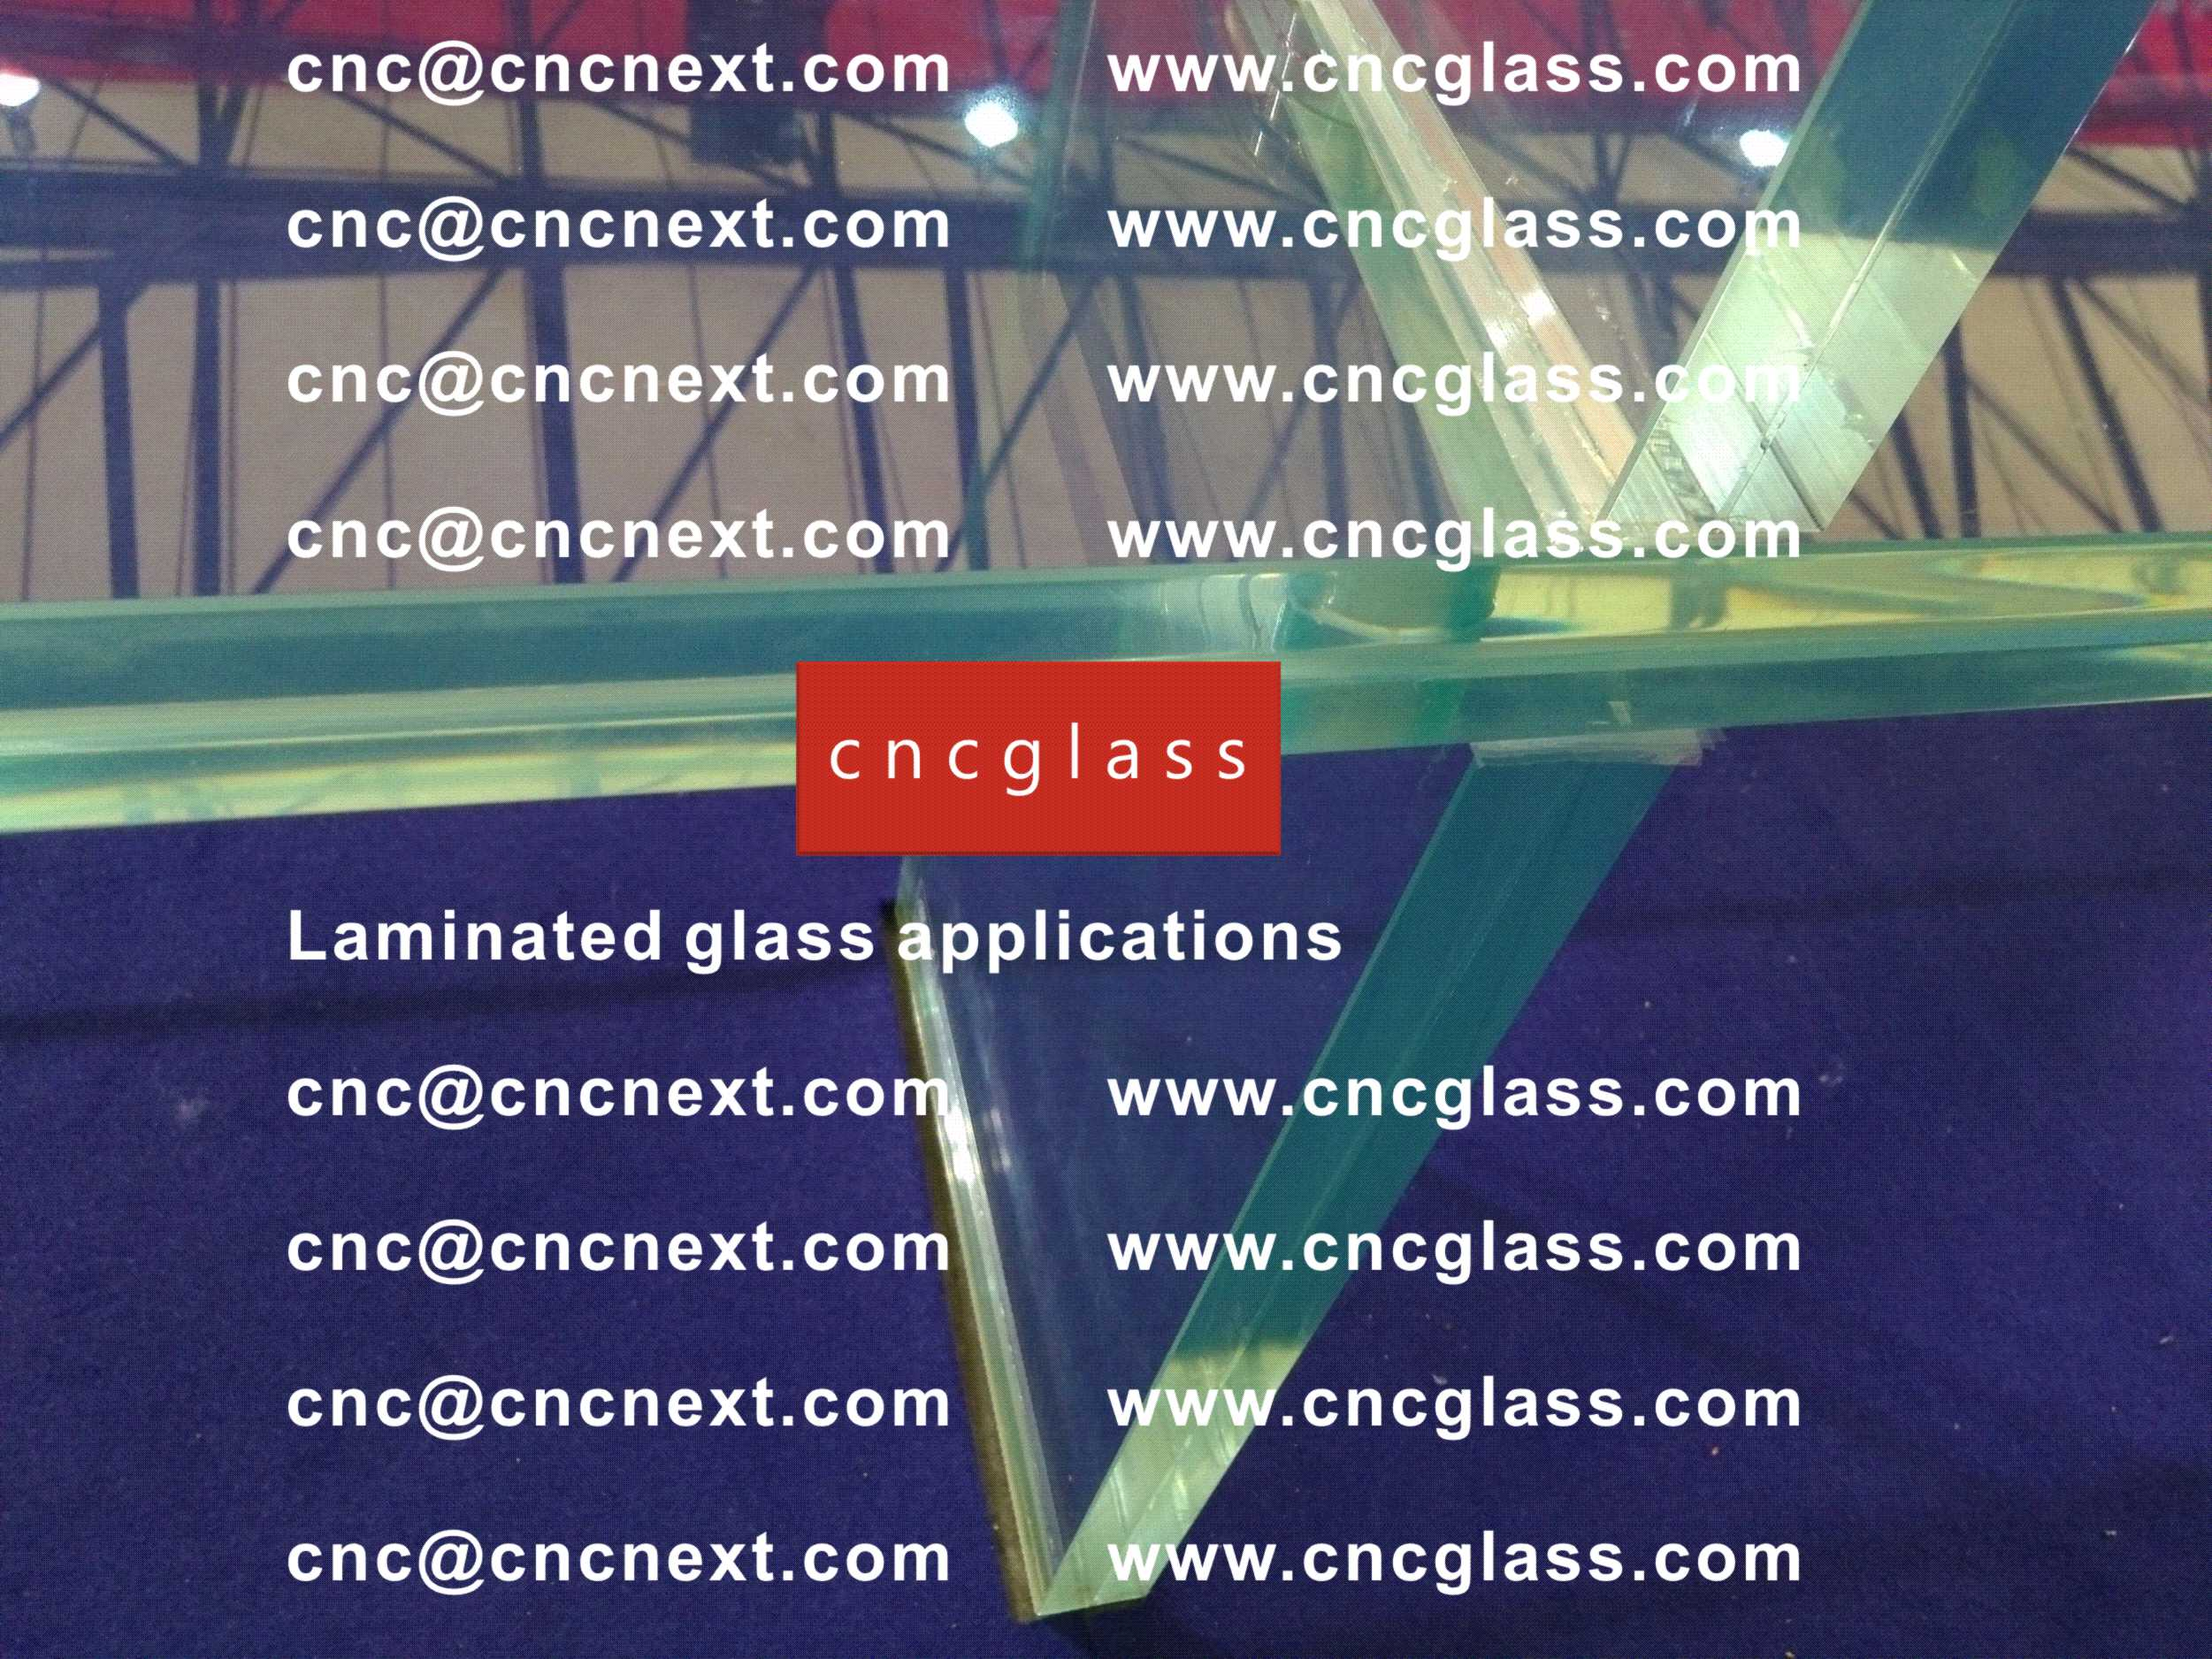 014 EVAFORCE LAMINATED GLASS